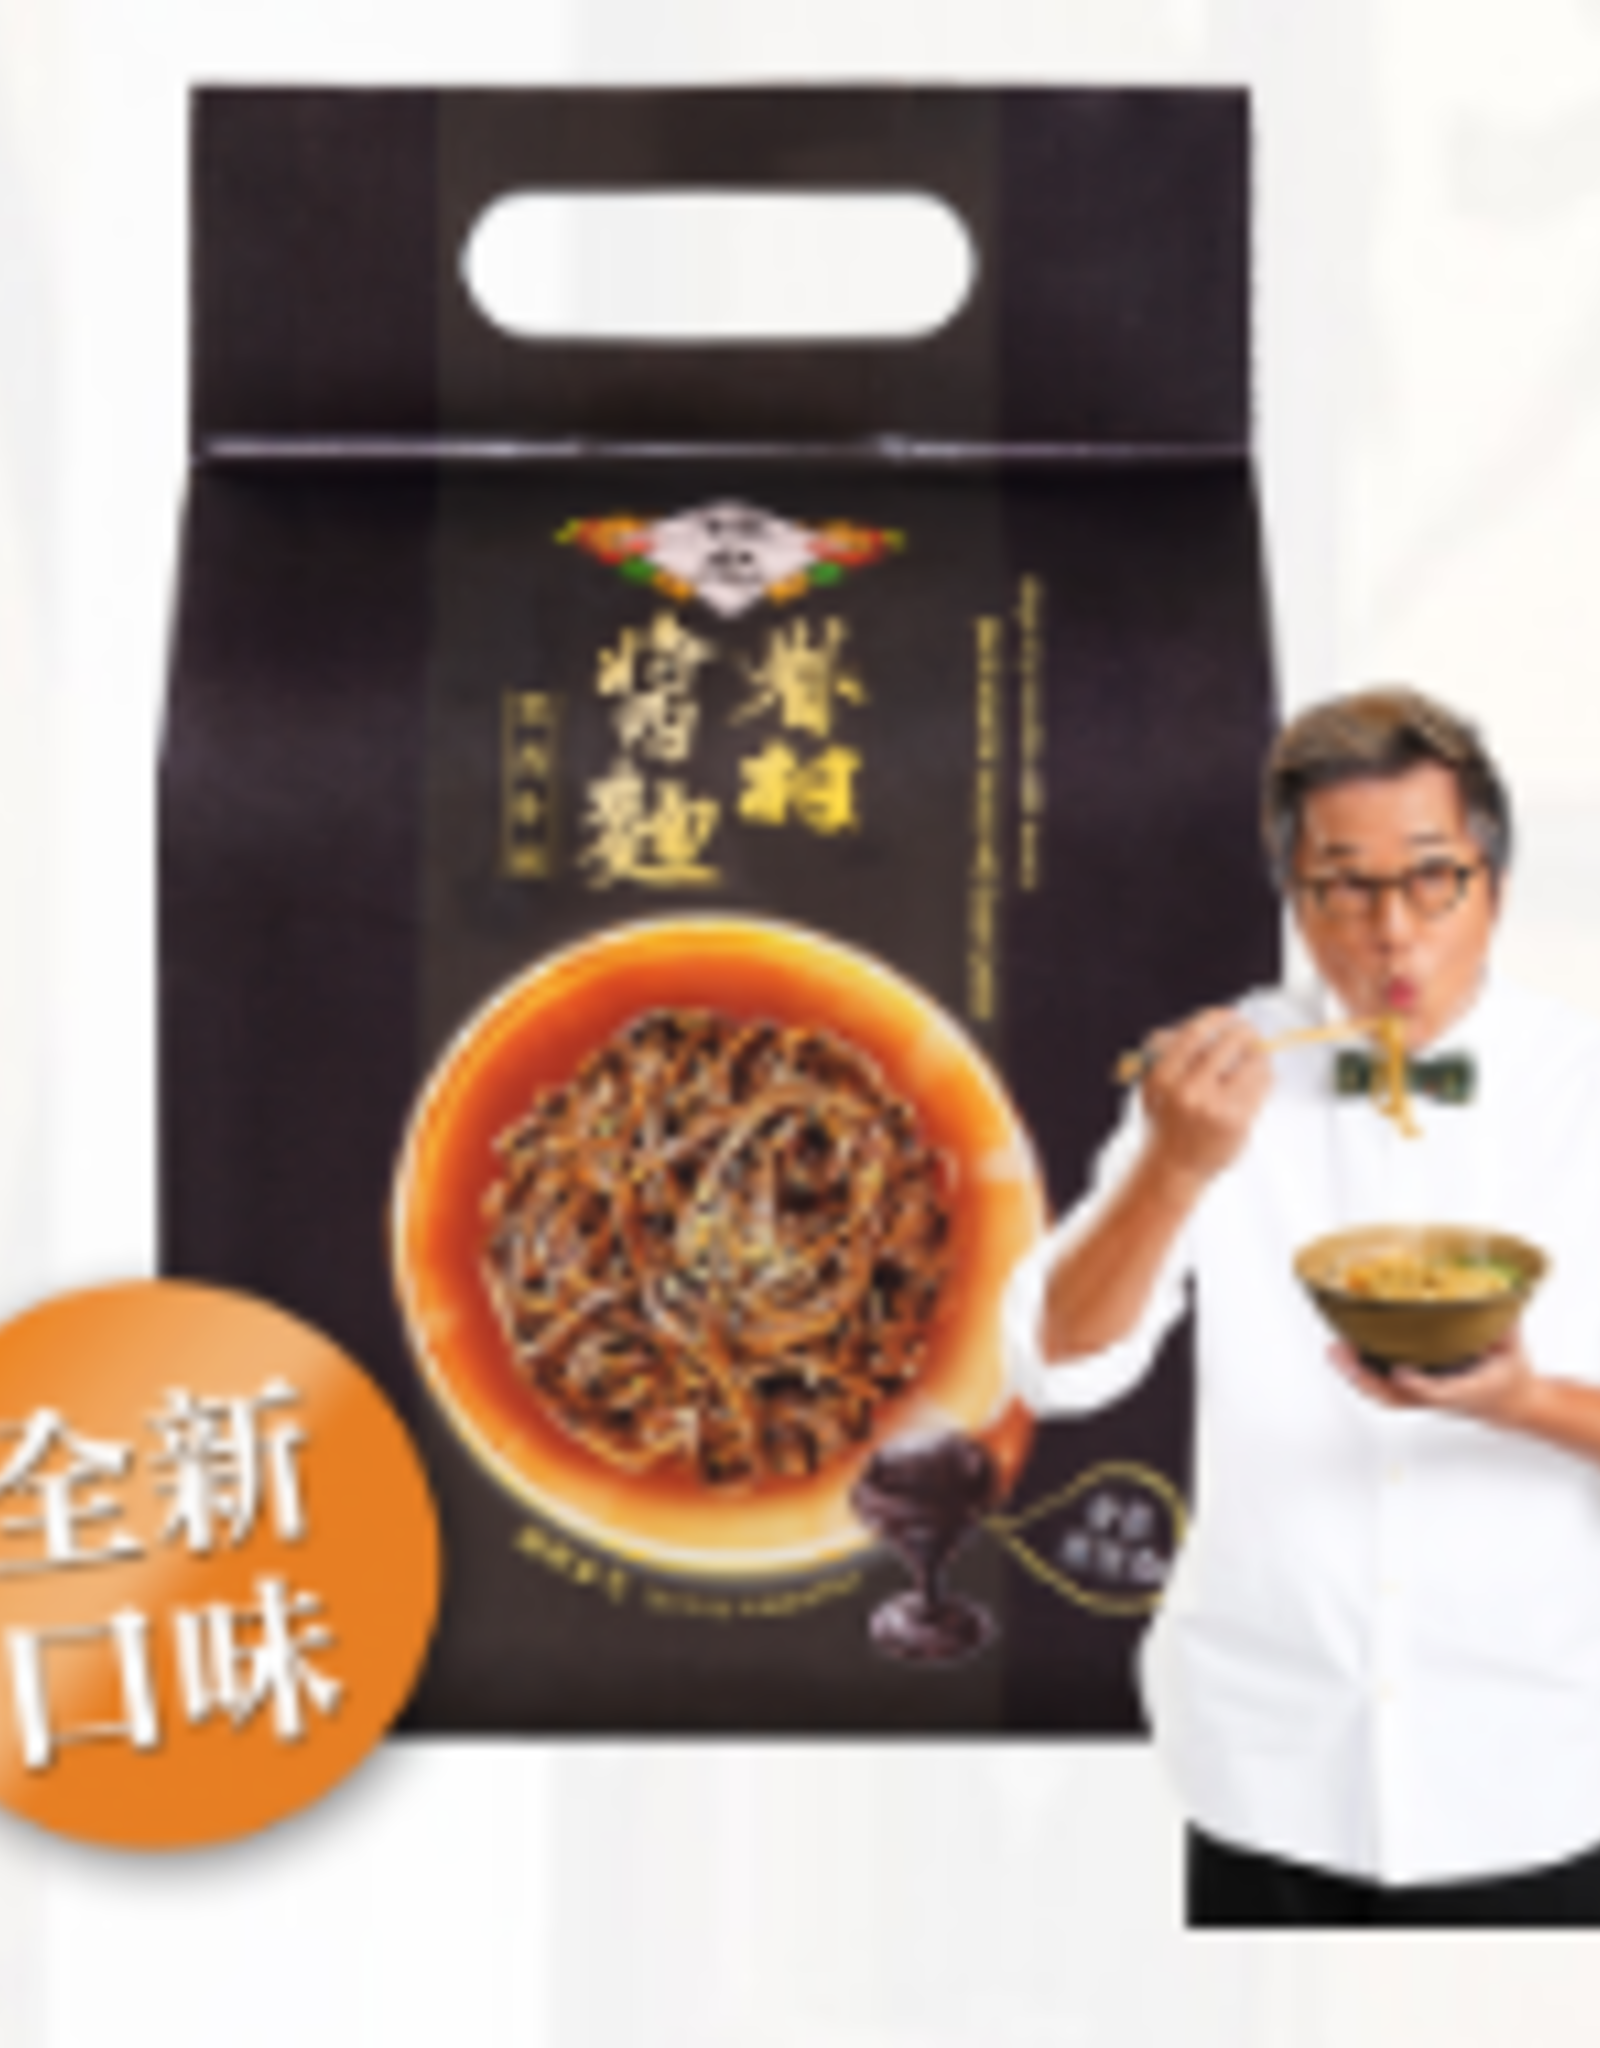 (UK) Vege Village Dry Noodles With Spicy Black Sesame & Bean Paste*(福忠) 眷村醬麵-黑香炸痲